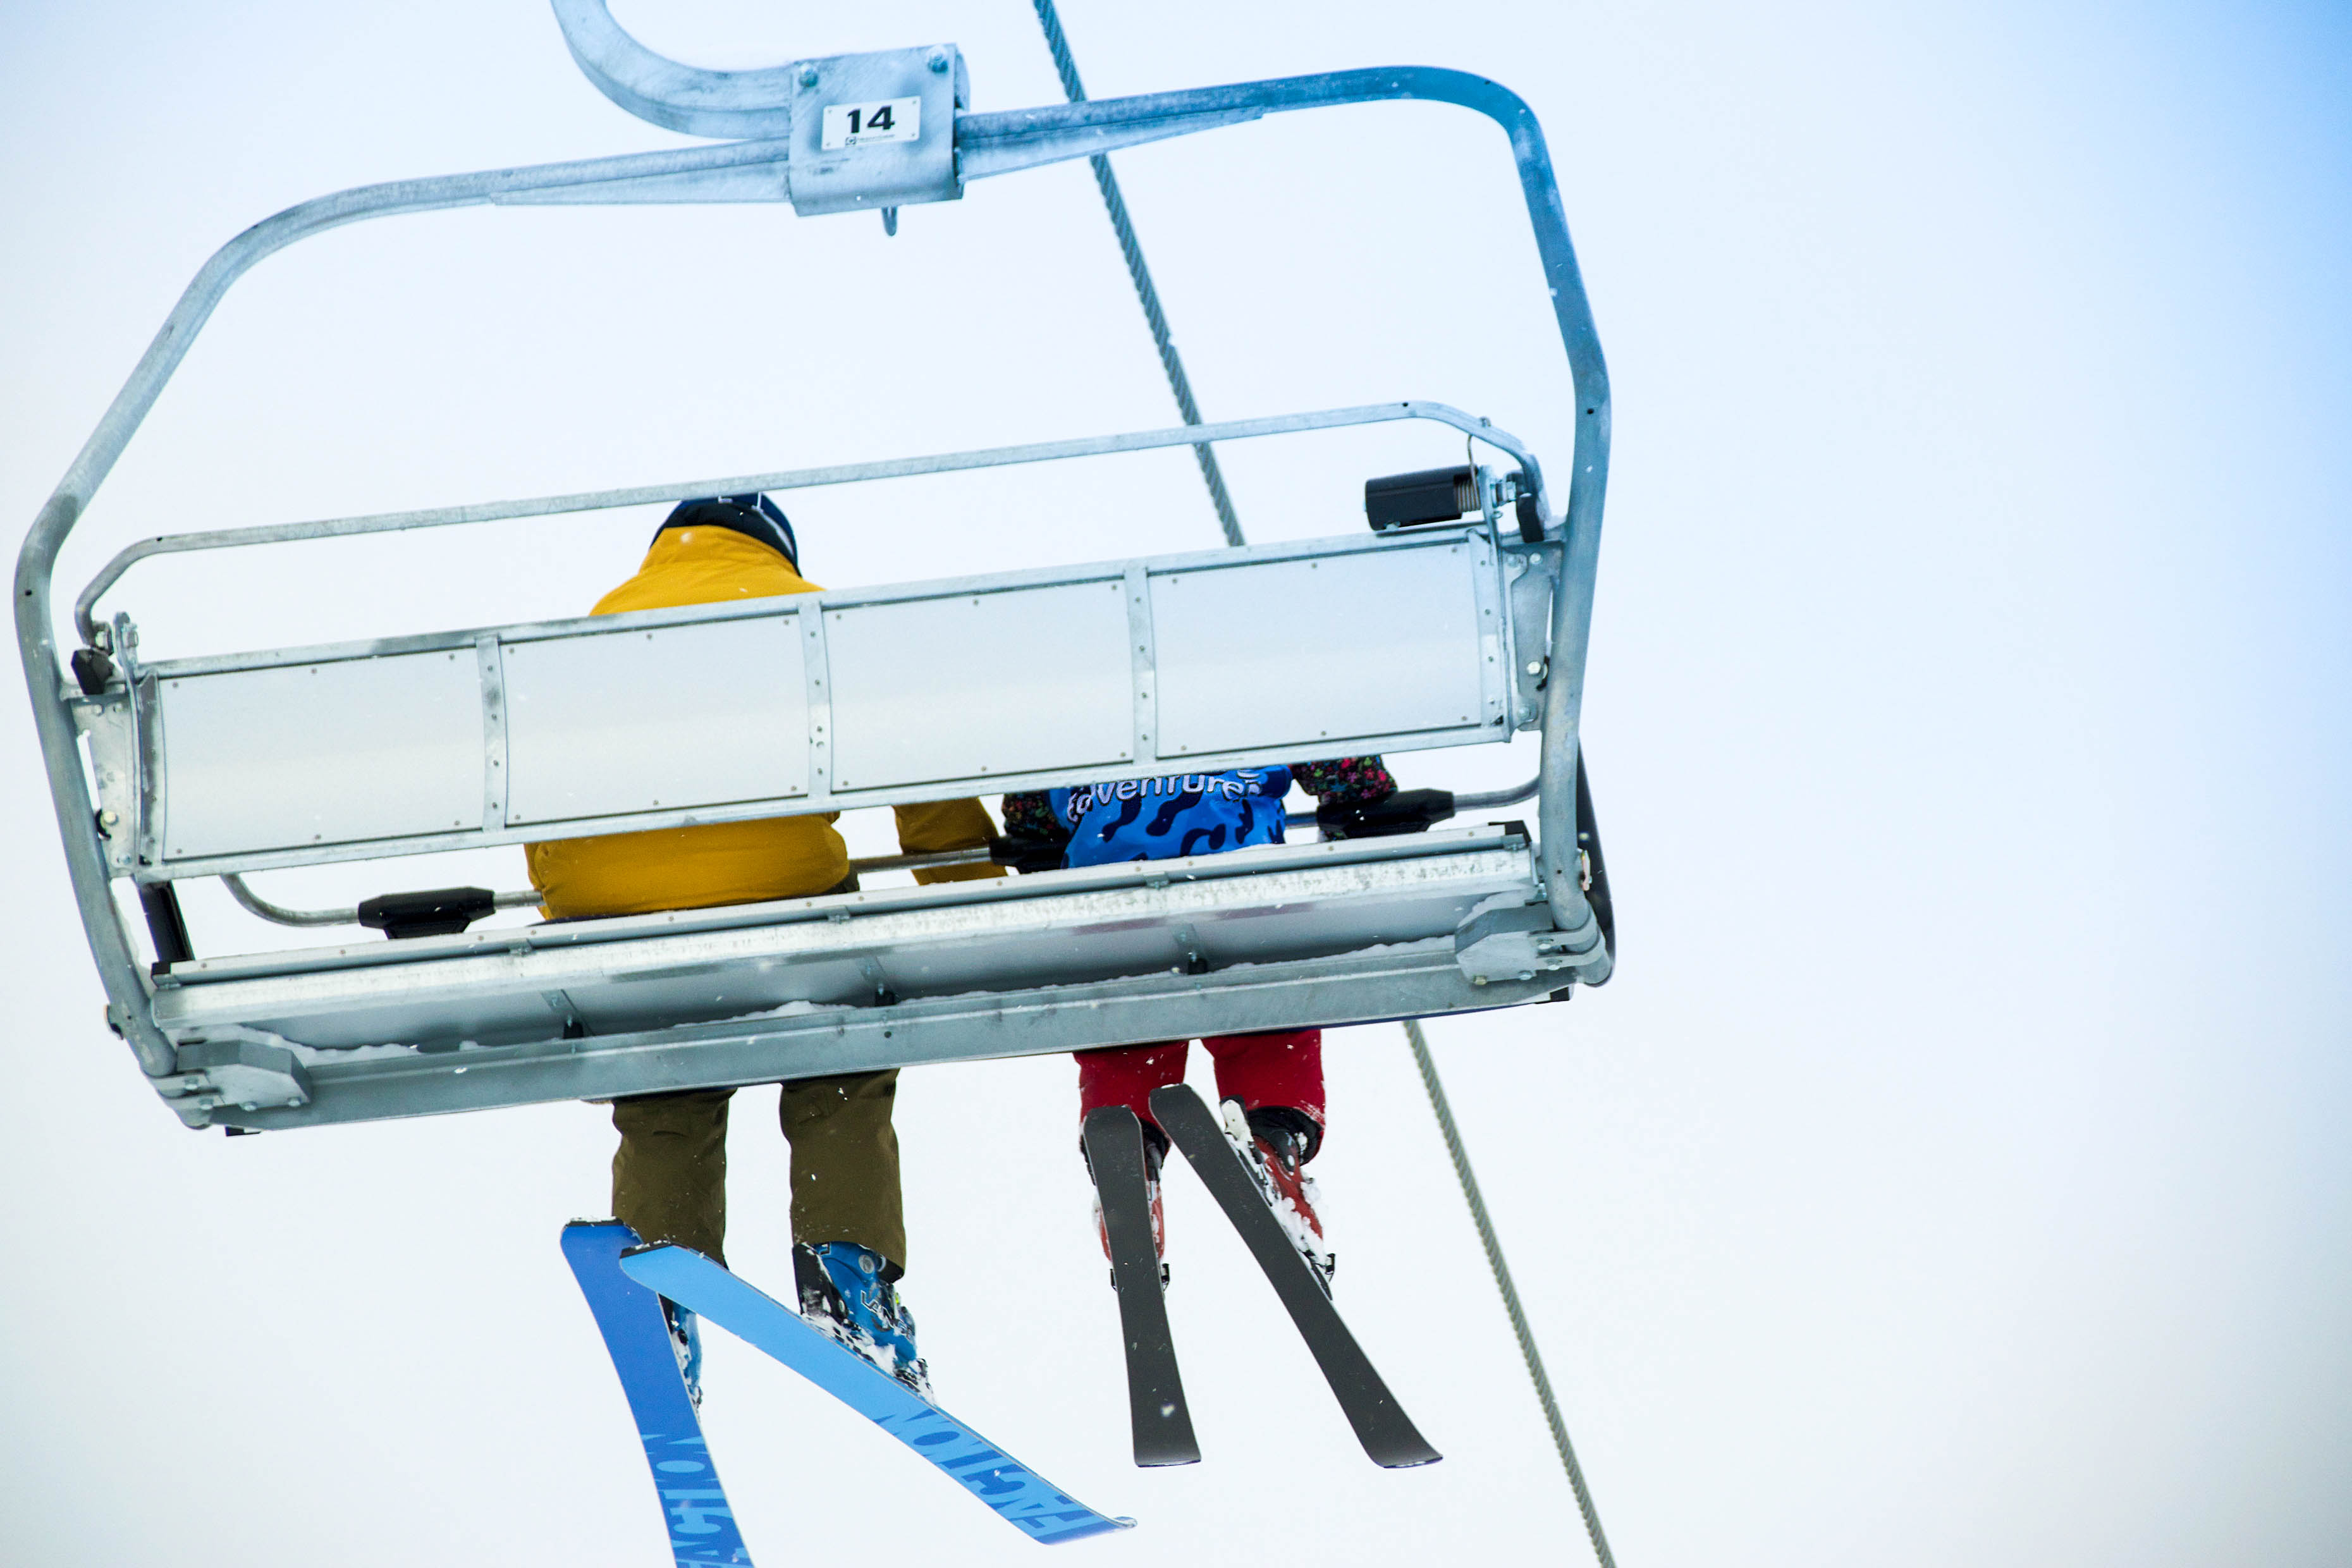 An EdVenture camper on the Niseko lifts during their afternoon ski lesson